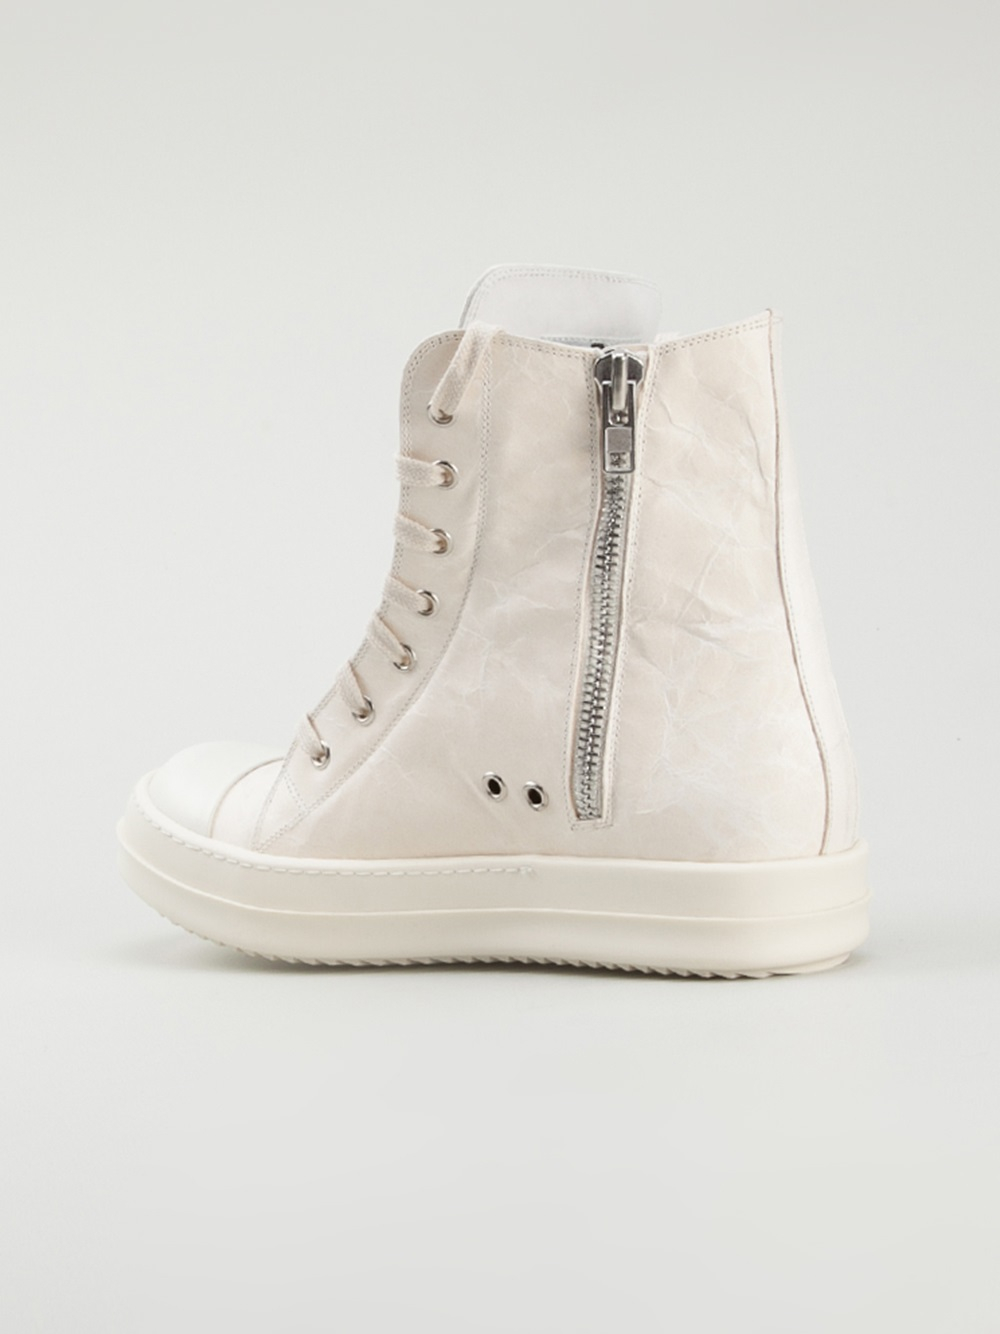 Rick Owens Uk | Rick Owen Ramones | Rick Owens Mens Shoes